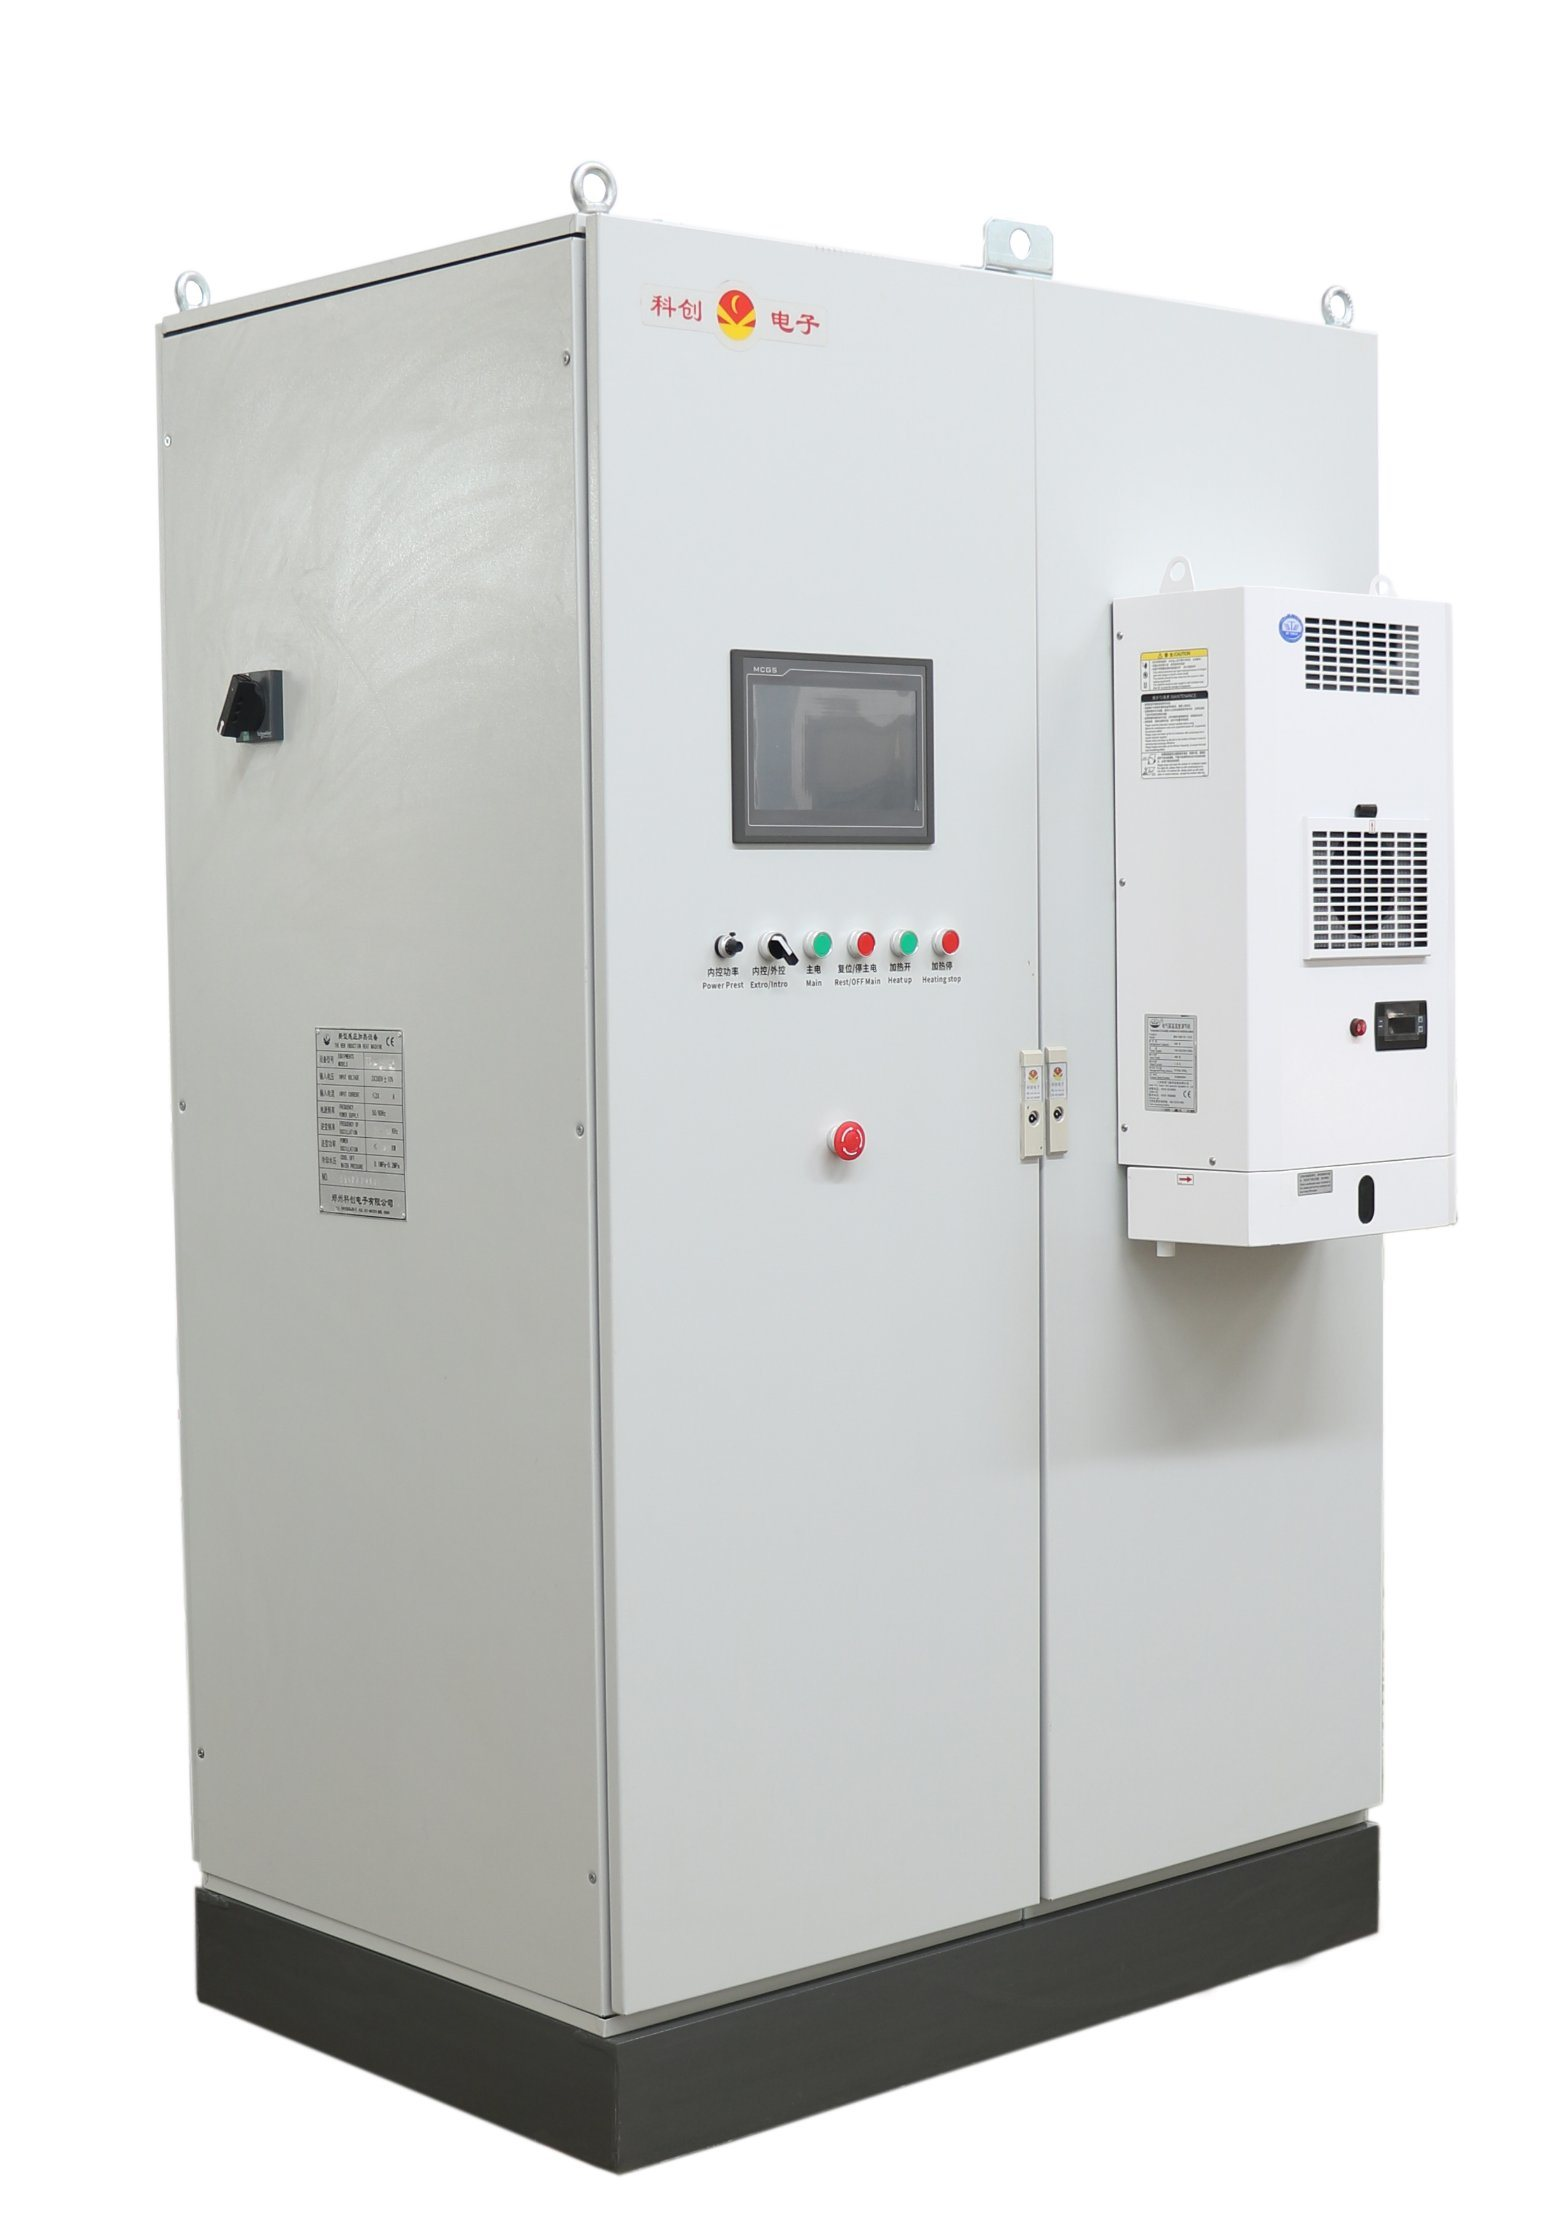 China Dsp Industrial Induction Heater For Heat Treatment Circuits Heating Process